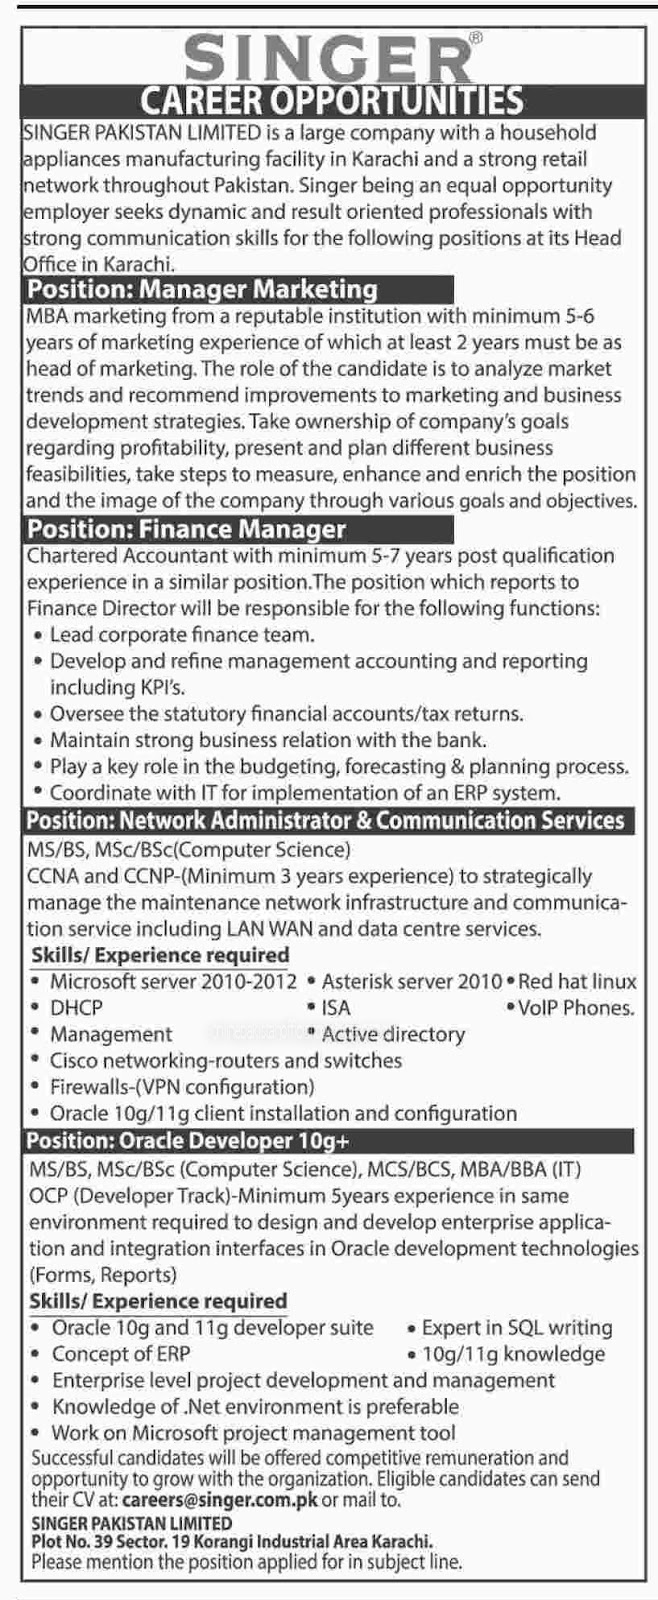 Singer Pakistan Limited Karachi Jobs 30 9 2016